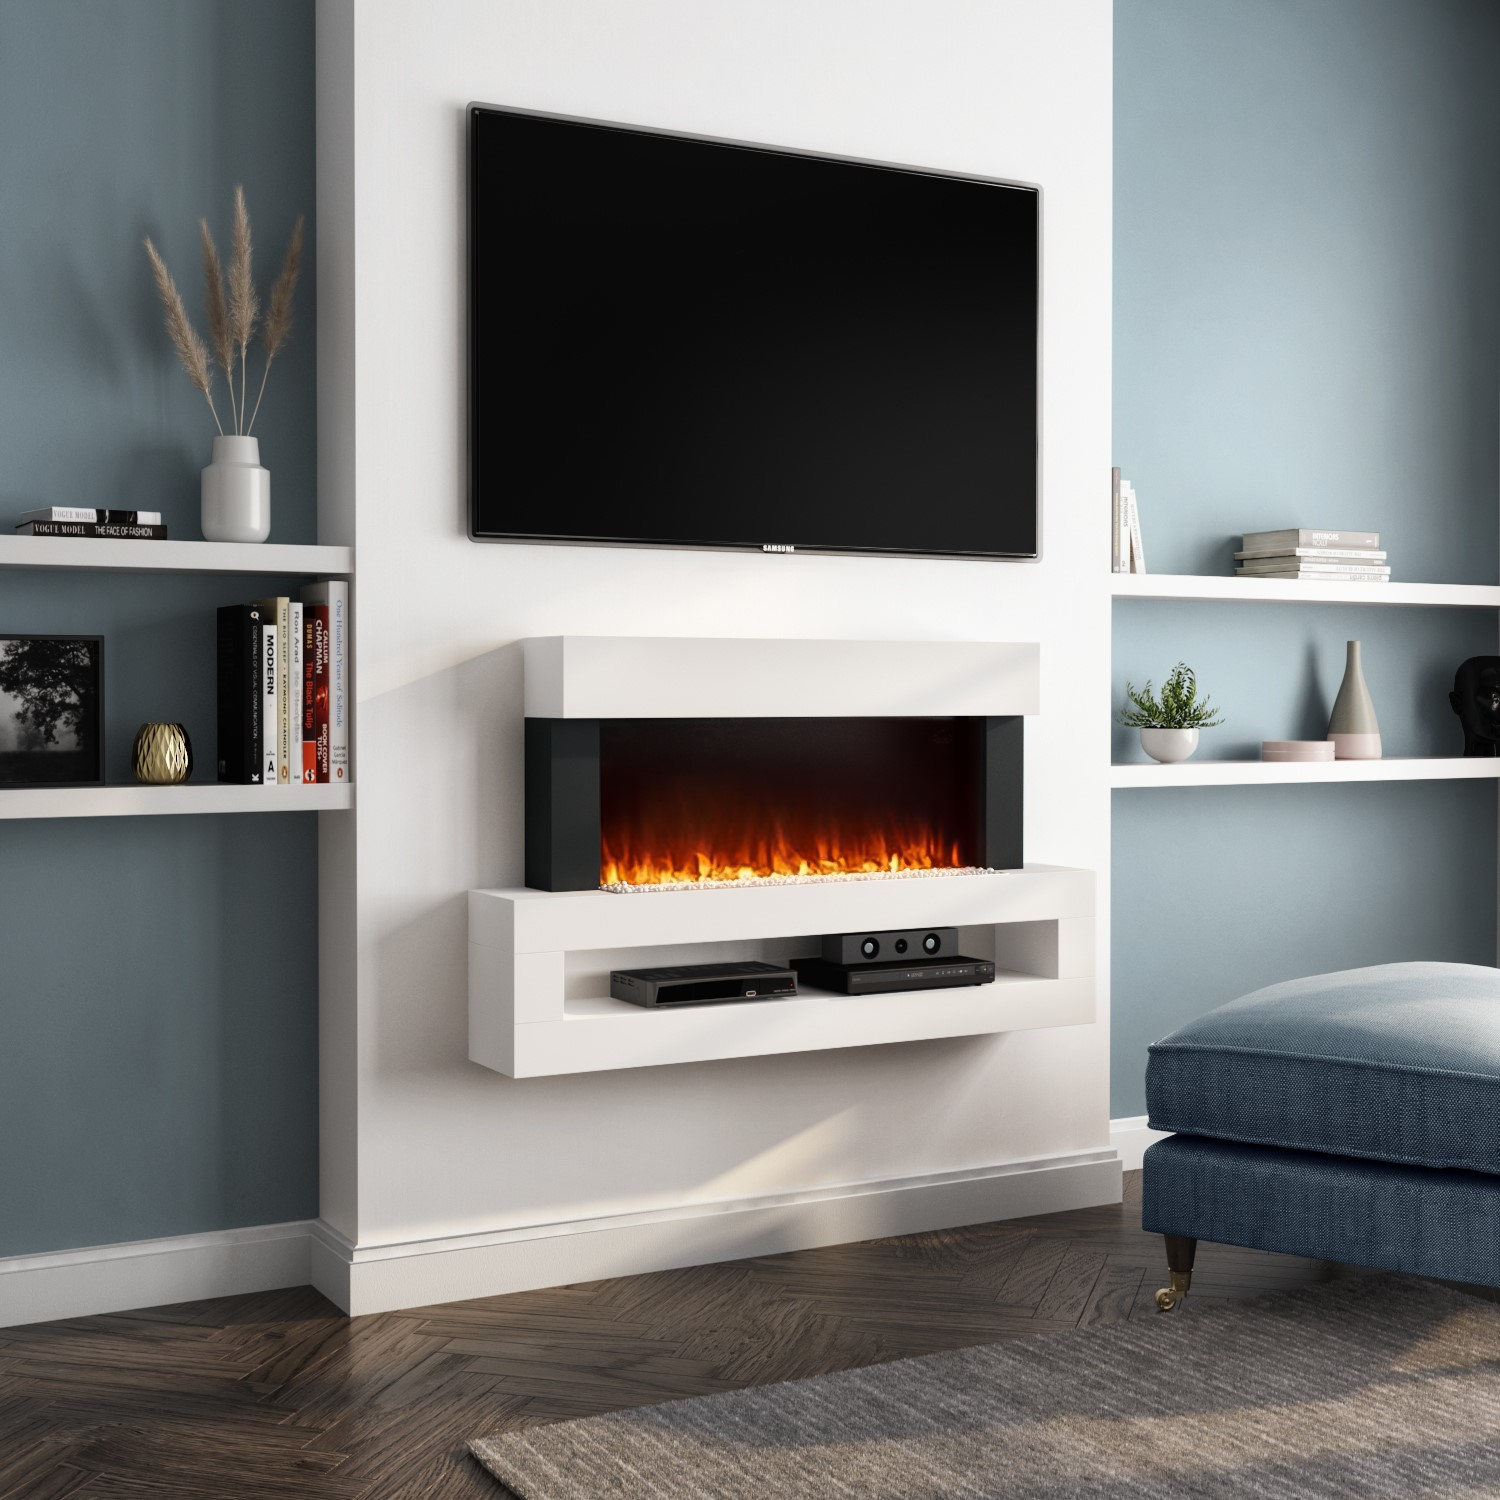 Amberglo White Wall Mounted Electric Fireplace Suite With Led